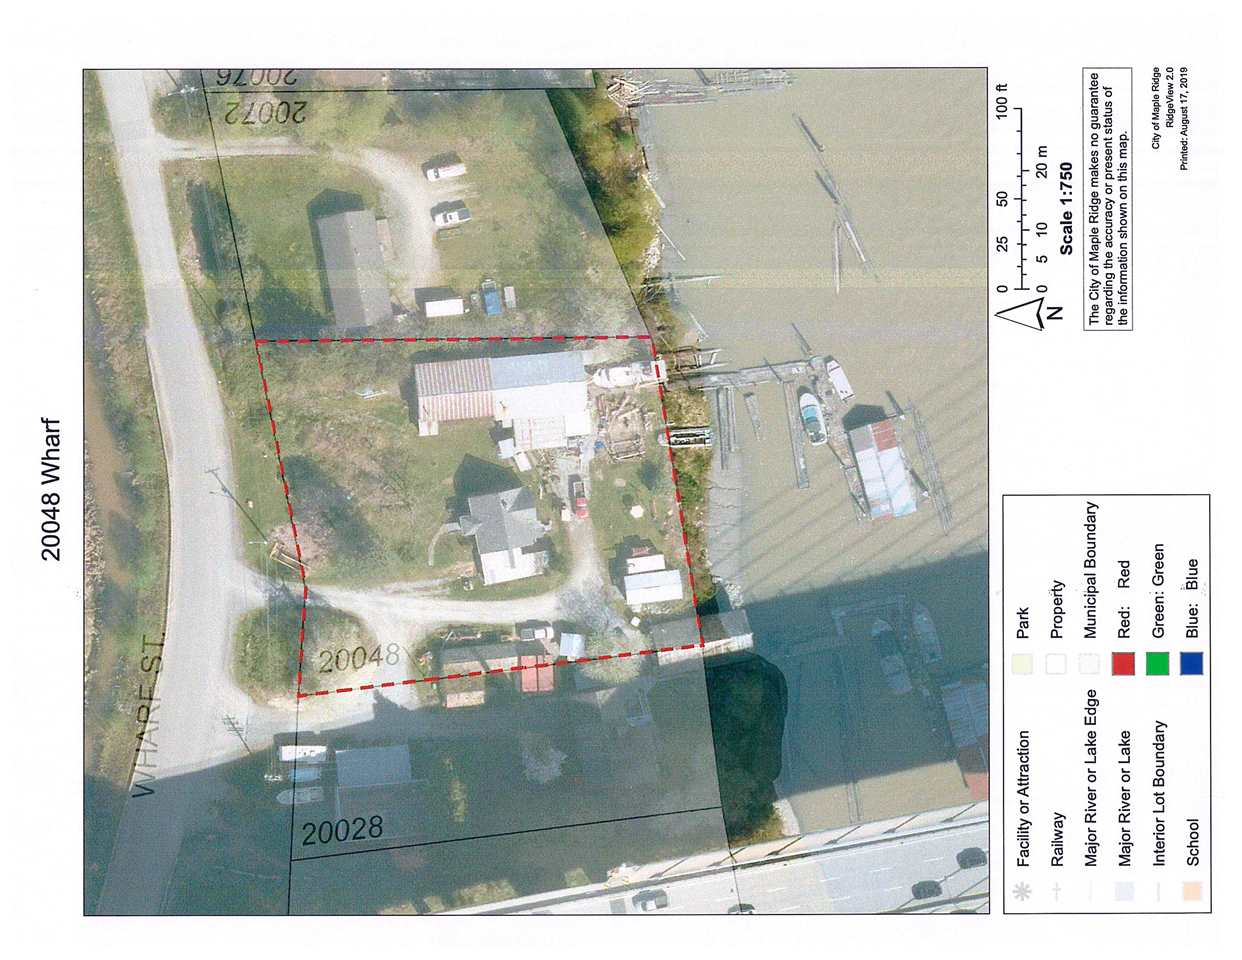 40,000 square feet of land right on the Fraser River, currently zoned RS3 but OCP has it MMBP (Maple Meadows Business Park) can we purchased with property next store for over 60,000 sq feet of land, has a moorage lease with Vancouver Port for Shore Rights, 20048 Wharf has approx 54 meters of river frontage and neighbour has 28 Meters.  Currently running a fishing business on land, large boat shed with water access, large fishing net shed, and many more out buildings, house is very rentable.